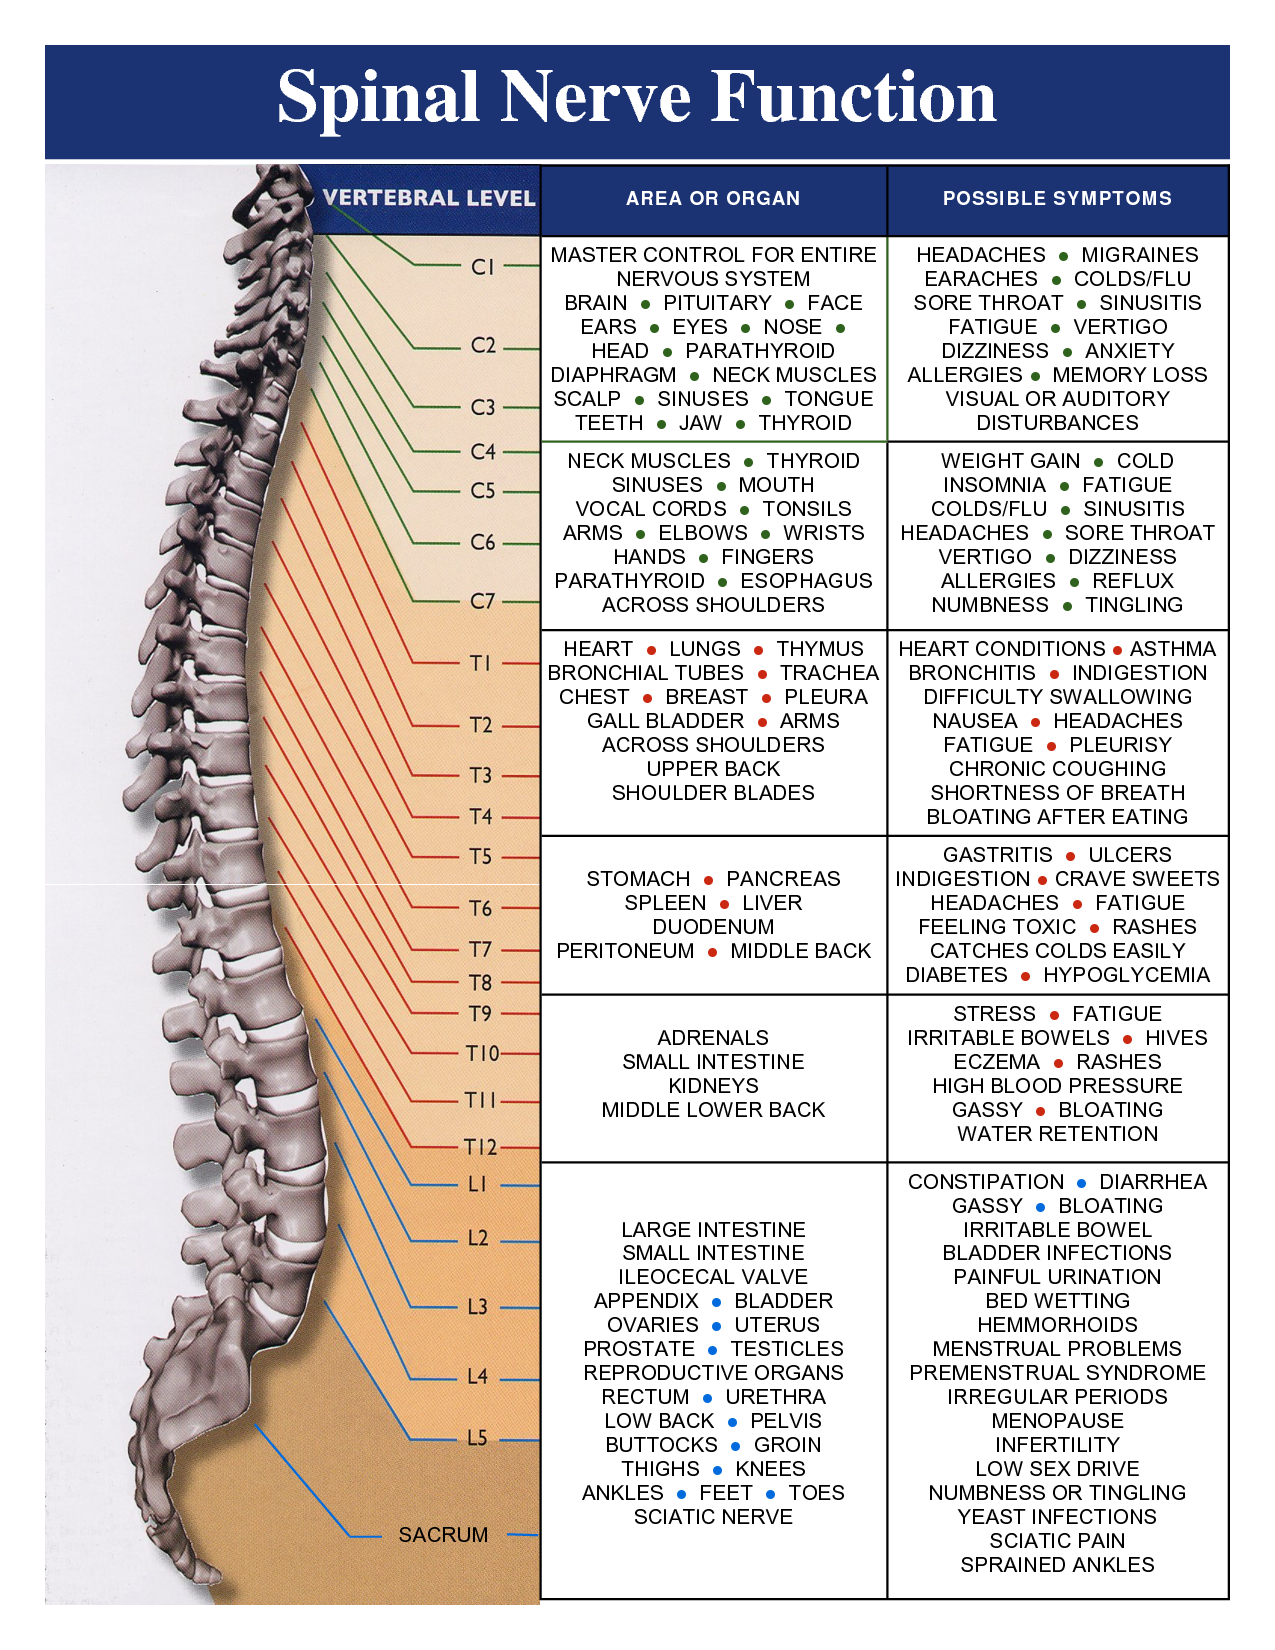 Lumbar Spinal Nerves Diagram Mitsubishi Shogun Wiring A Healthy Spine Is Important To Your Overall Health And